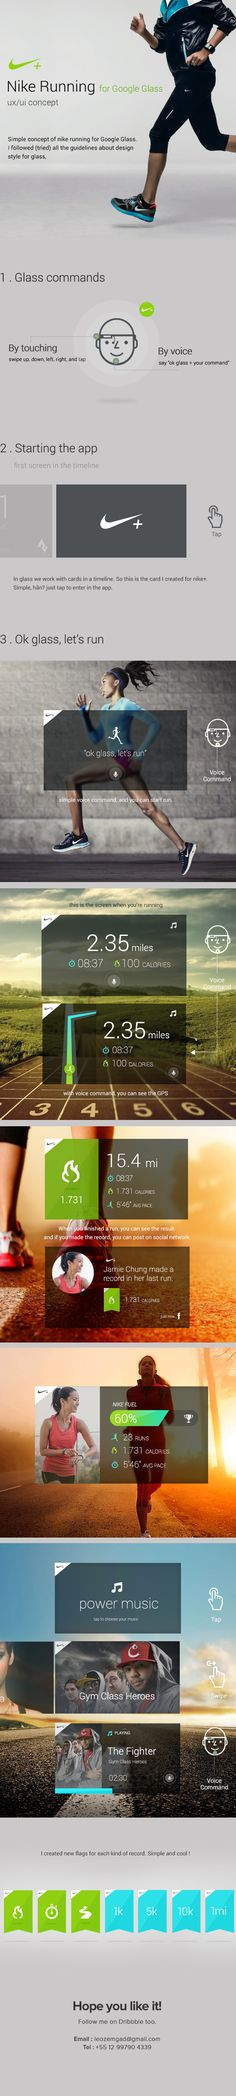 #Nike Running for #GoogleGlass by Leonardo Zem, via #Behance #UX #UI